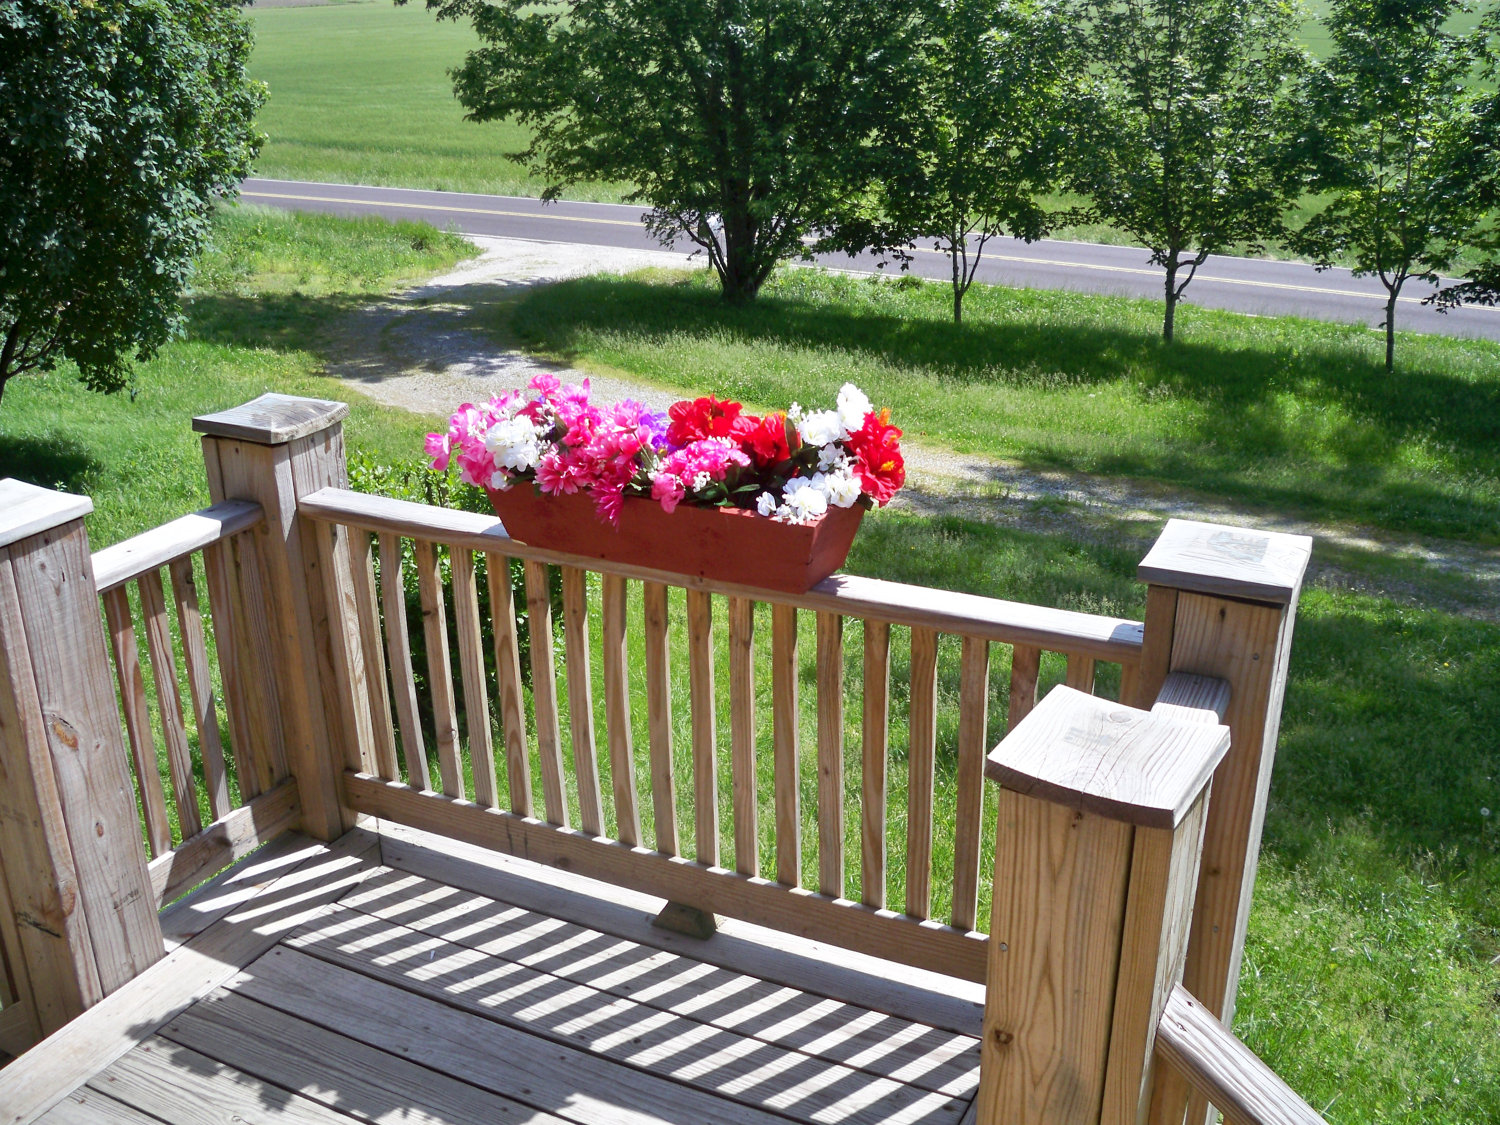 Decor deck planters deck railing planter boxes deck rail planters flower boxes for porch railings deck railing planter boxes deck rail planters baanklon Images